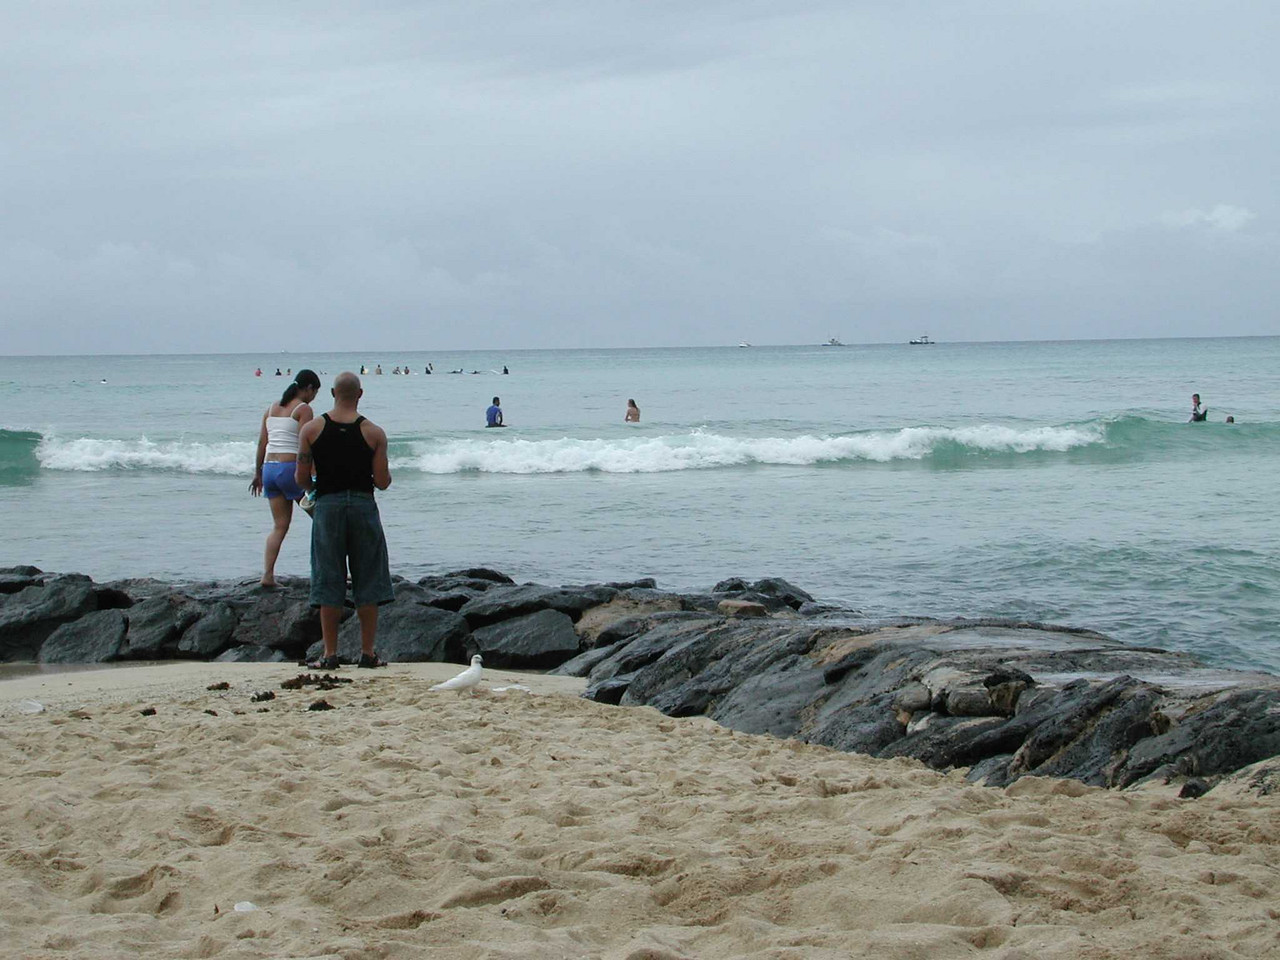 Not exactly killer waves, but lots of surfer-noobs.